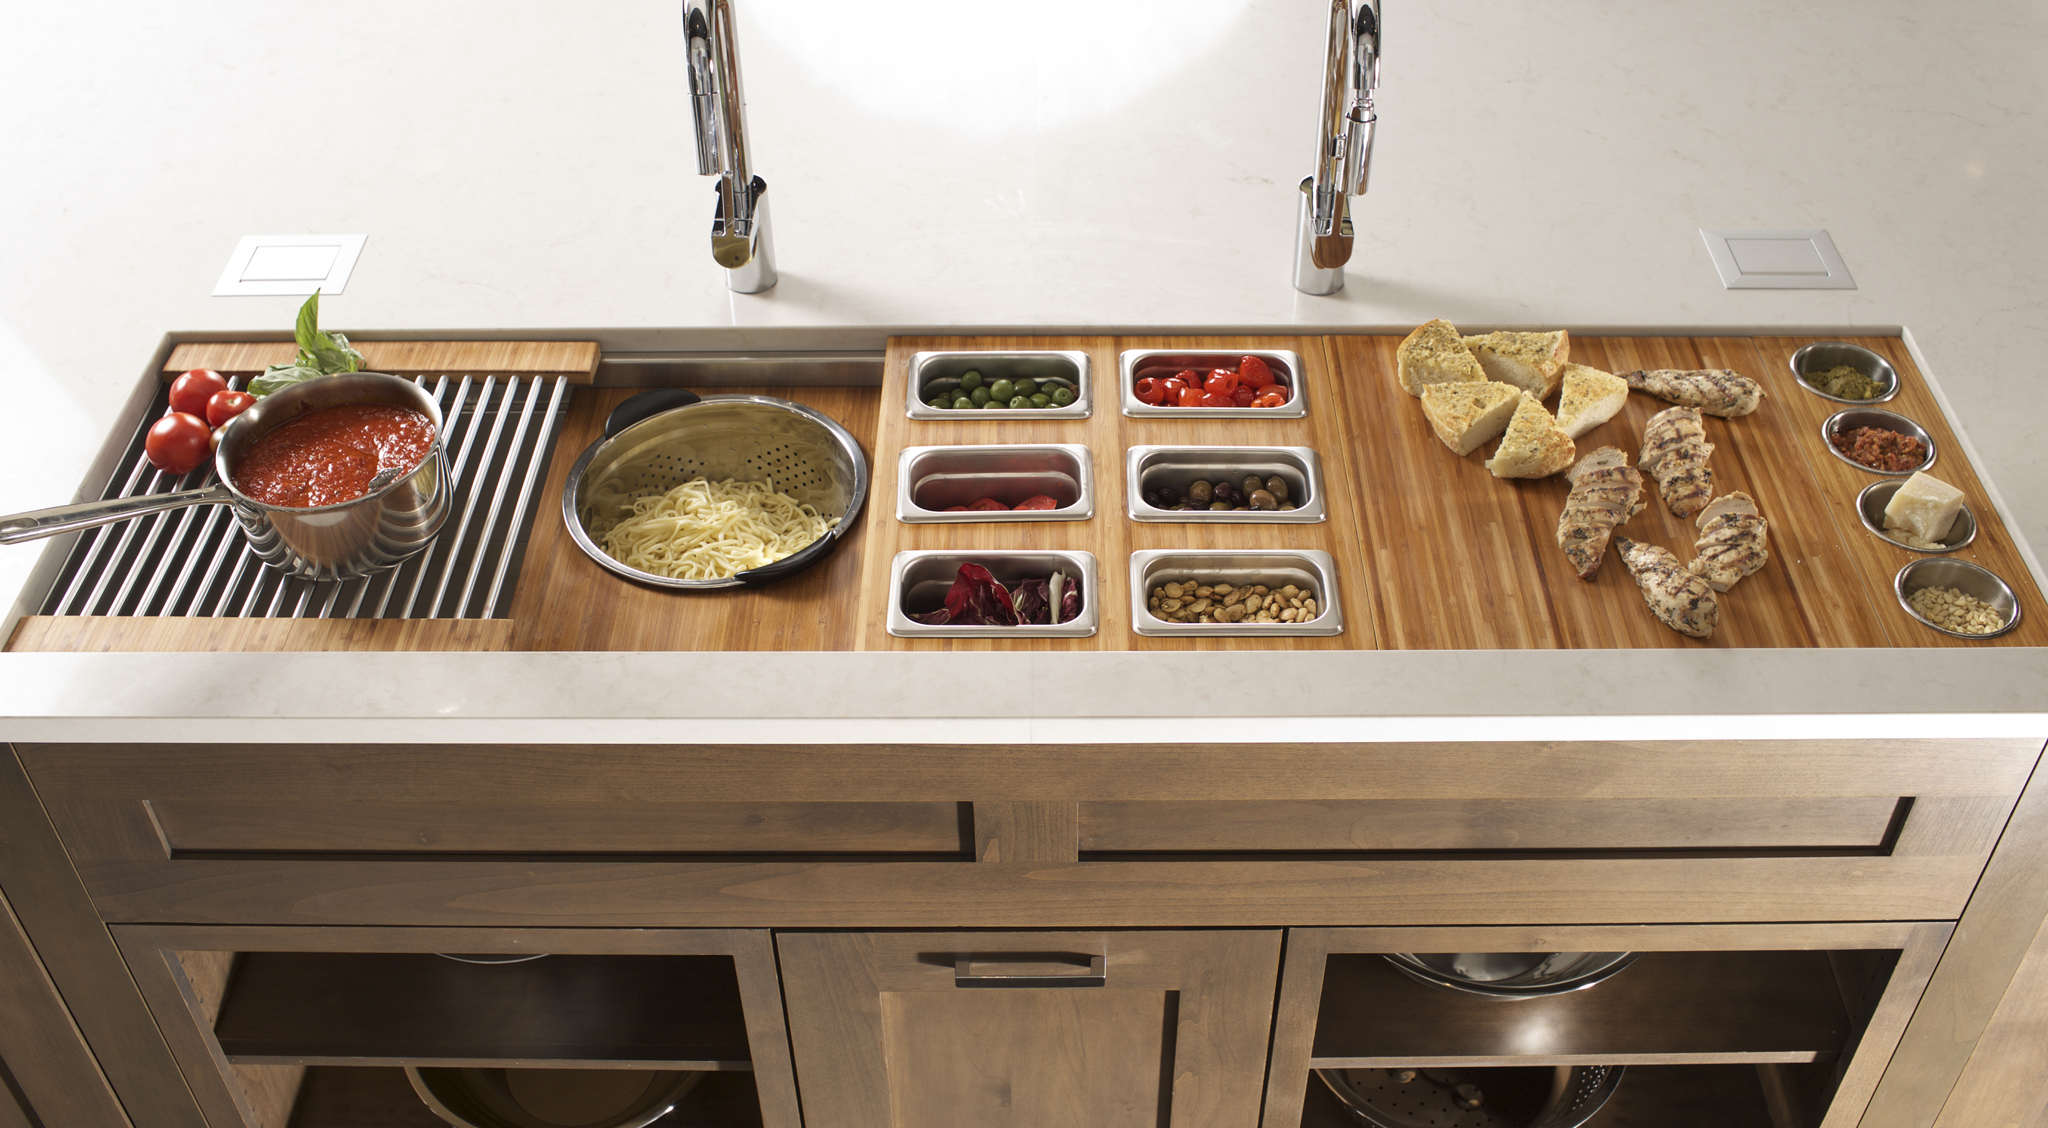 9/25/14 6:23:08 PM -- Kitchen interiors of The Galley sink at Metro Appliance for Kitchen Ideas/The Galley  Photo by Shane Bevel